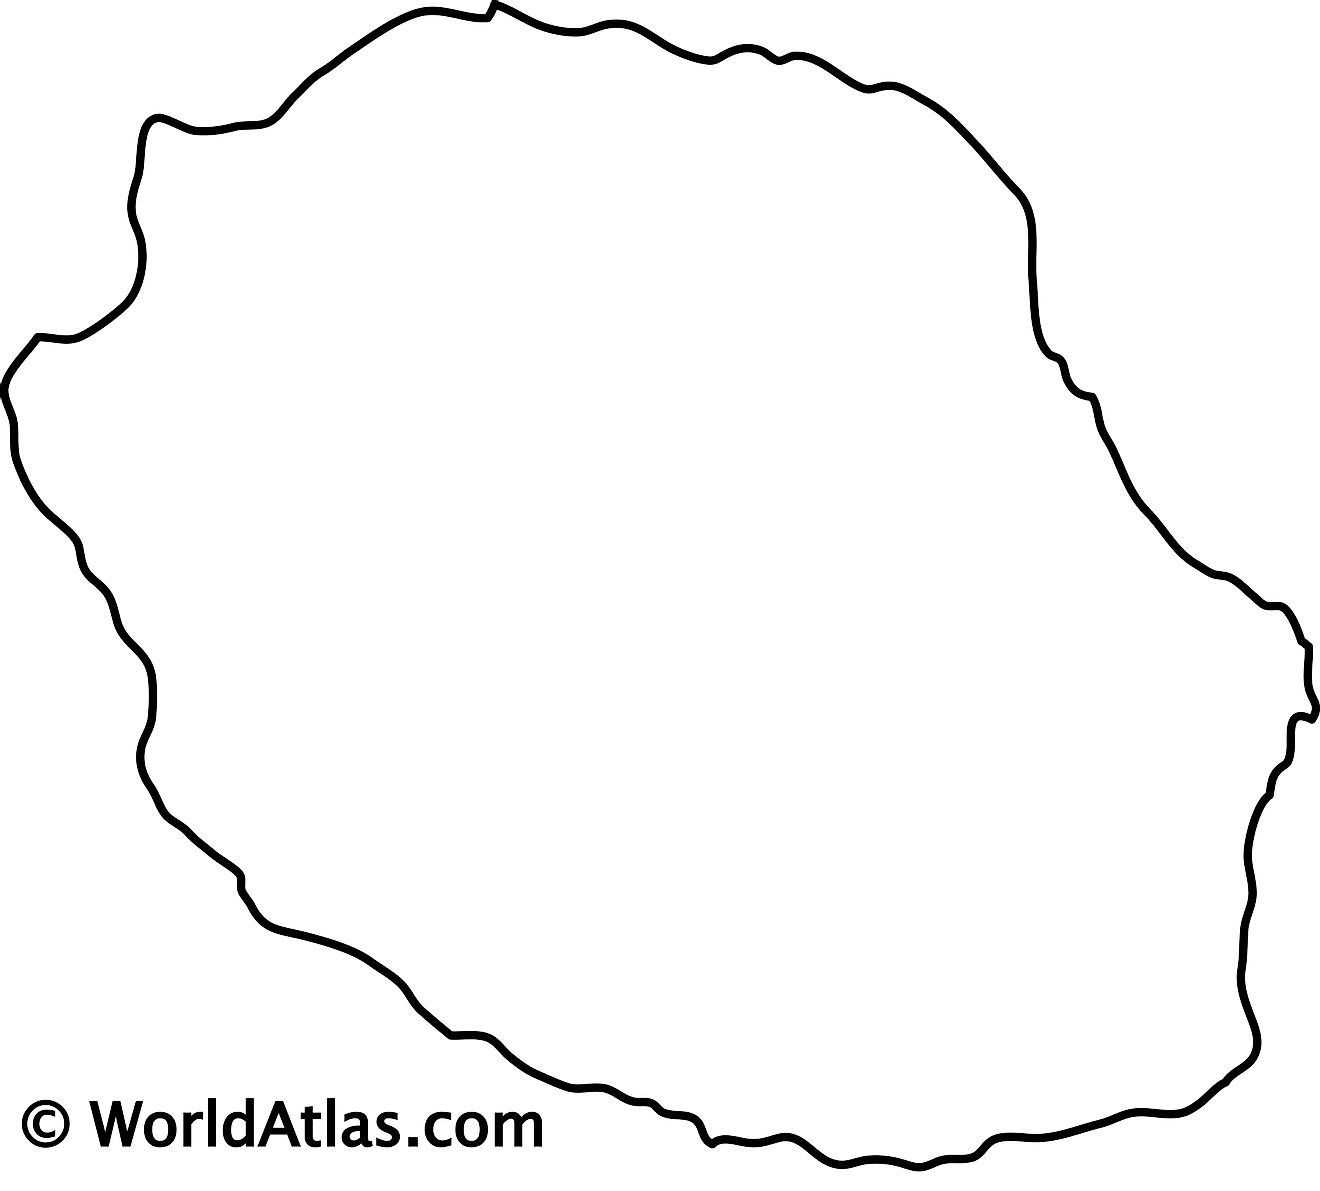 Blank outline map of Reunion